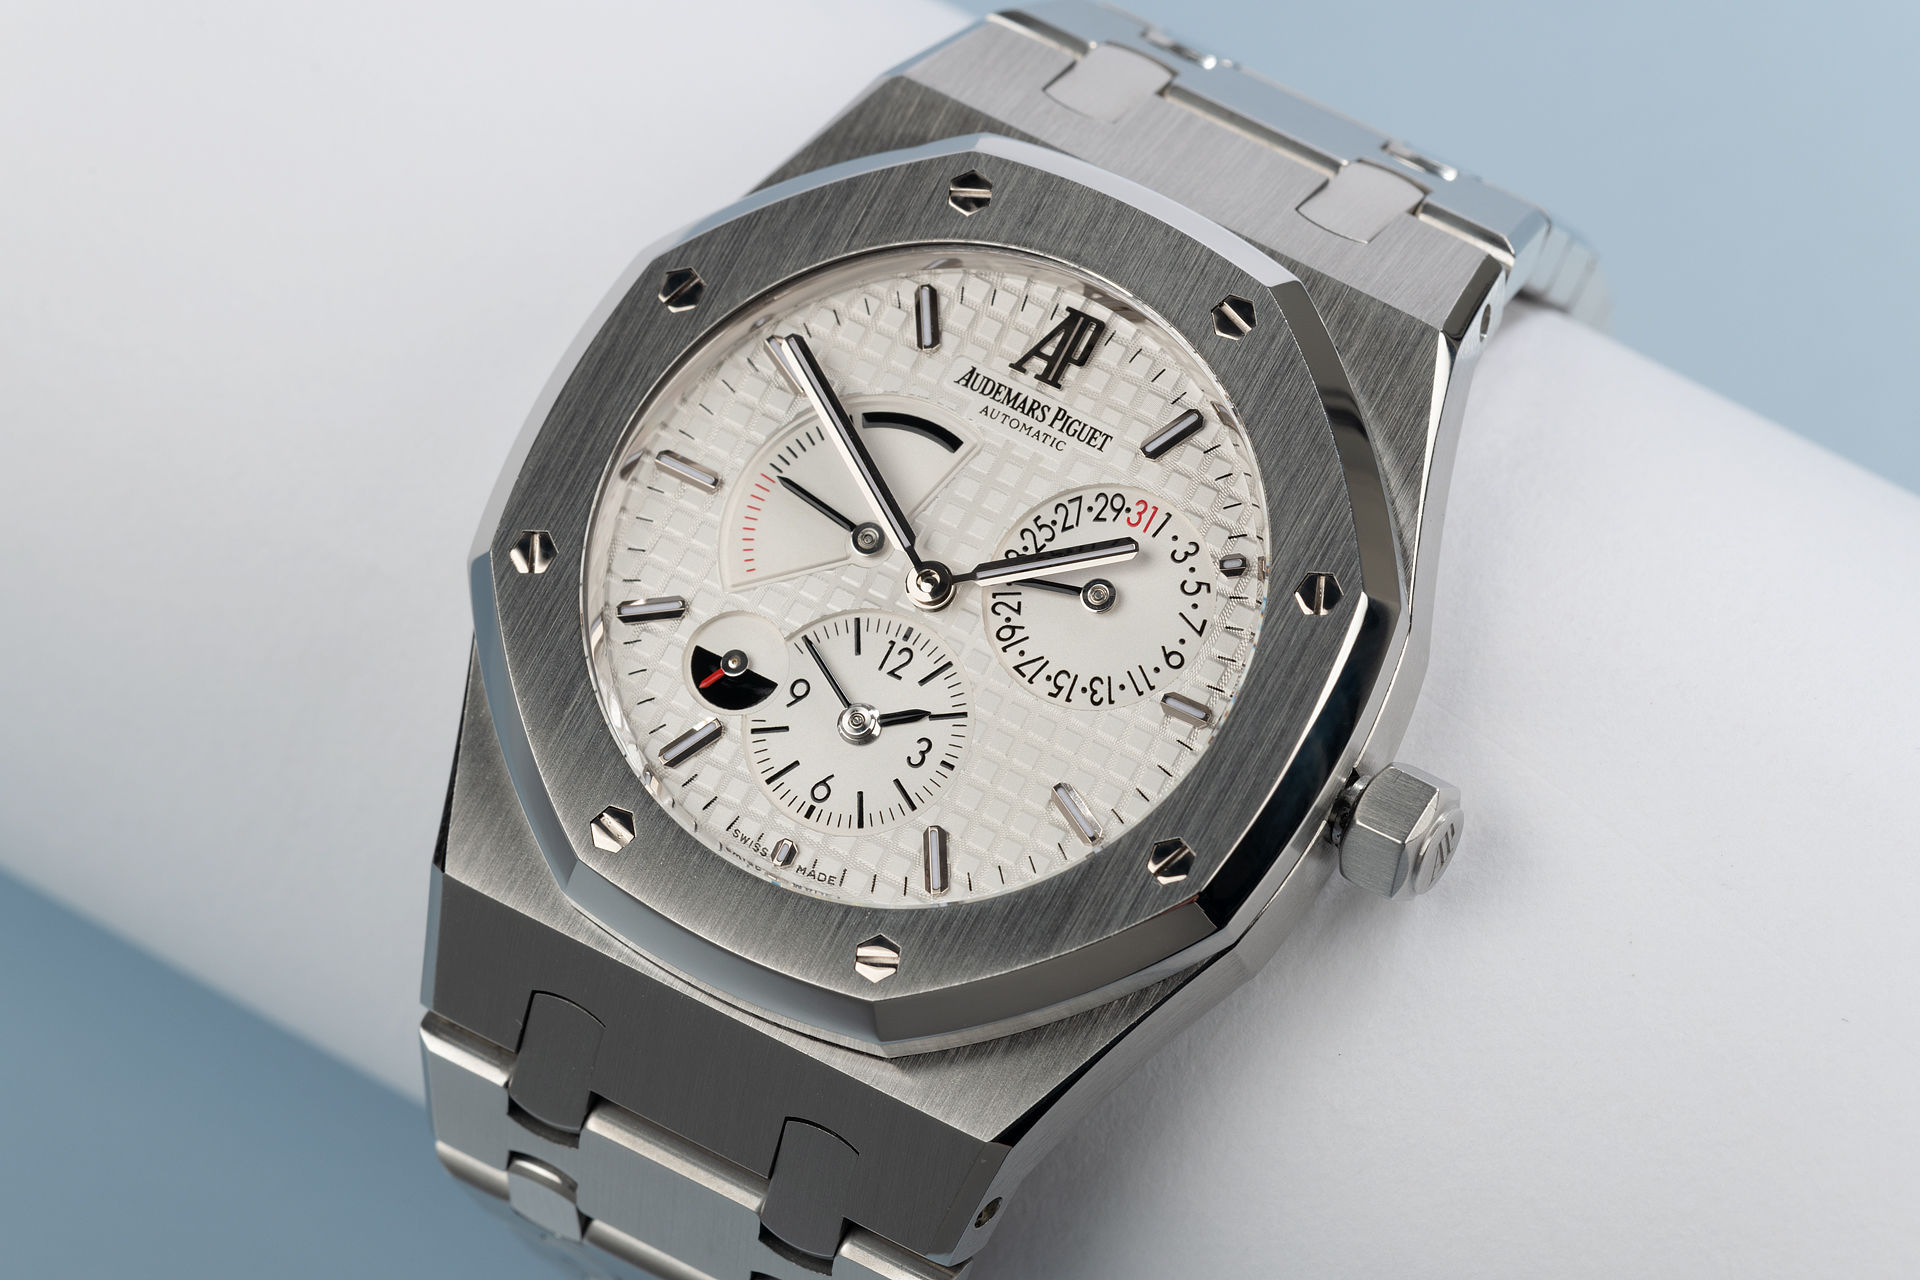 ref 26120ST.OO.1220ST.01 | 39mm 'Full Set' | Audemars Piguet Royal Oak Dual Time